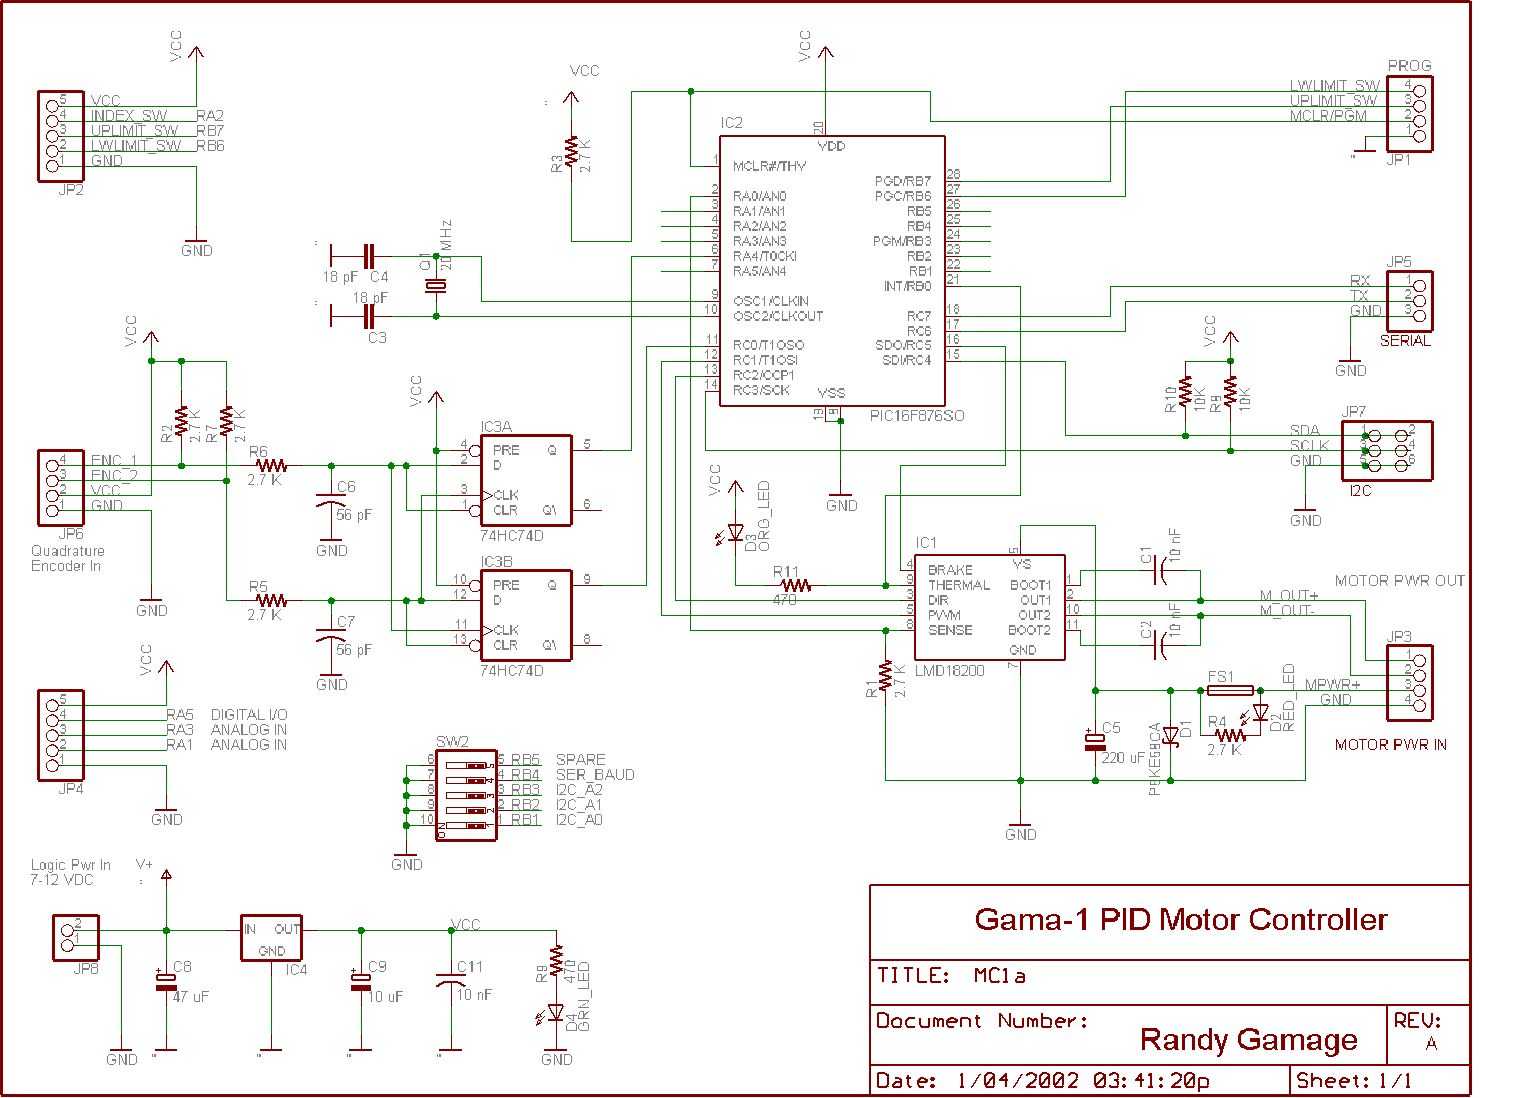 Designing A Pid Motor Controller Using Pic16f876 Circuit Diagram Of Microcontroller And Driver Overview